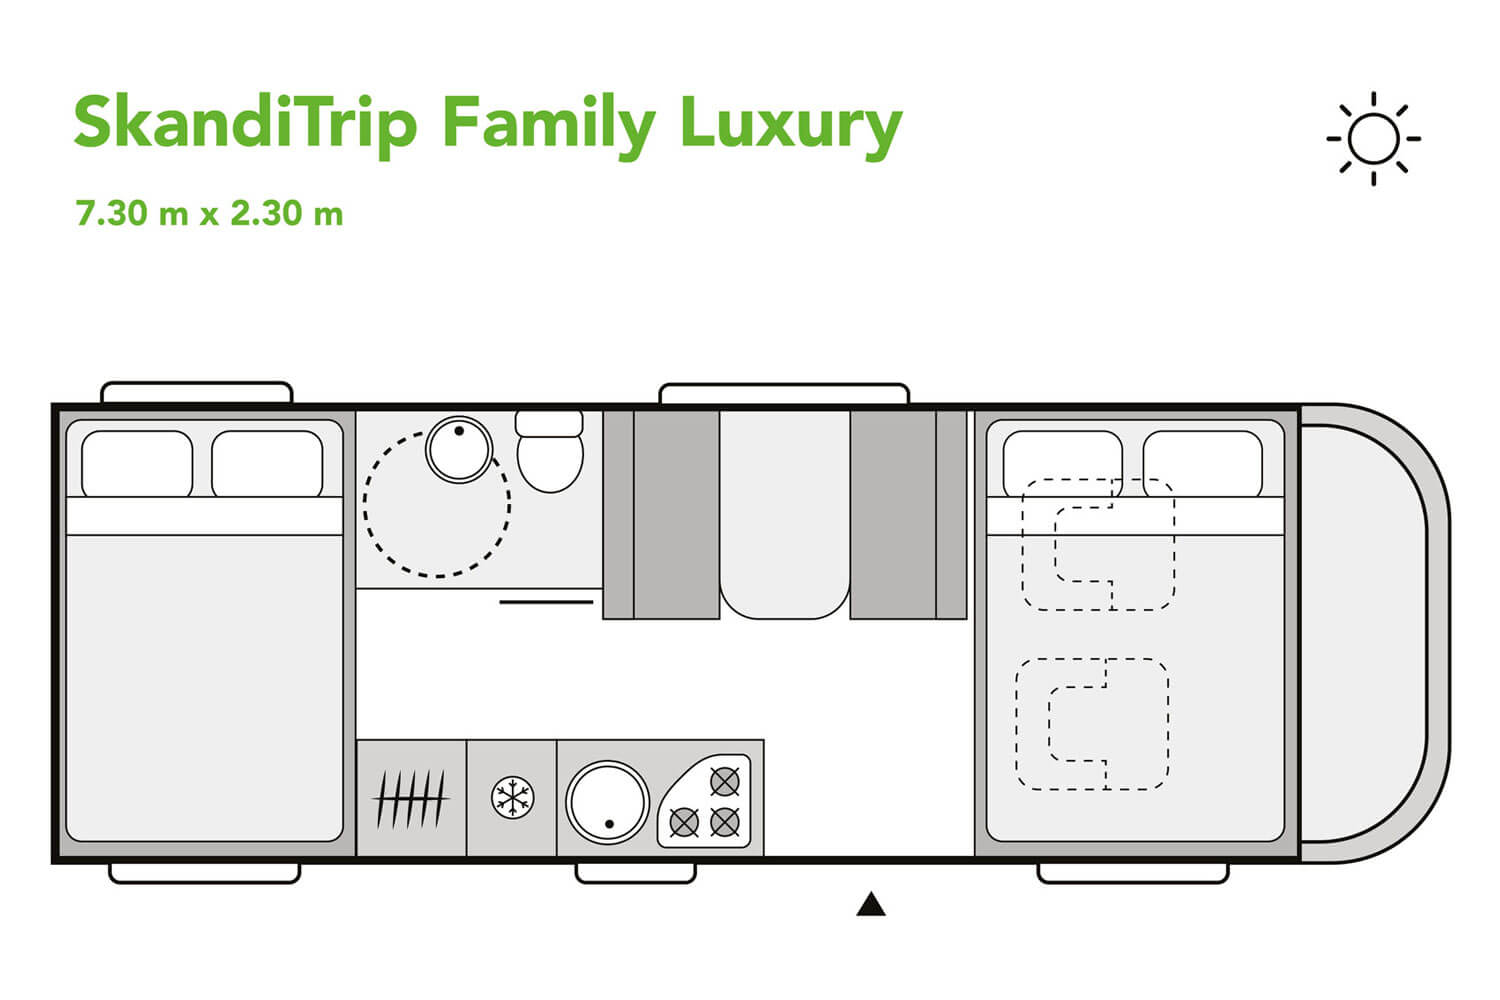 SkandiTrip family luxury motorhome daytime blueprint